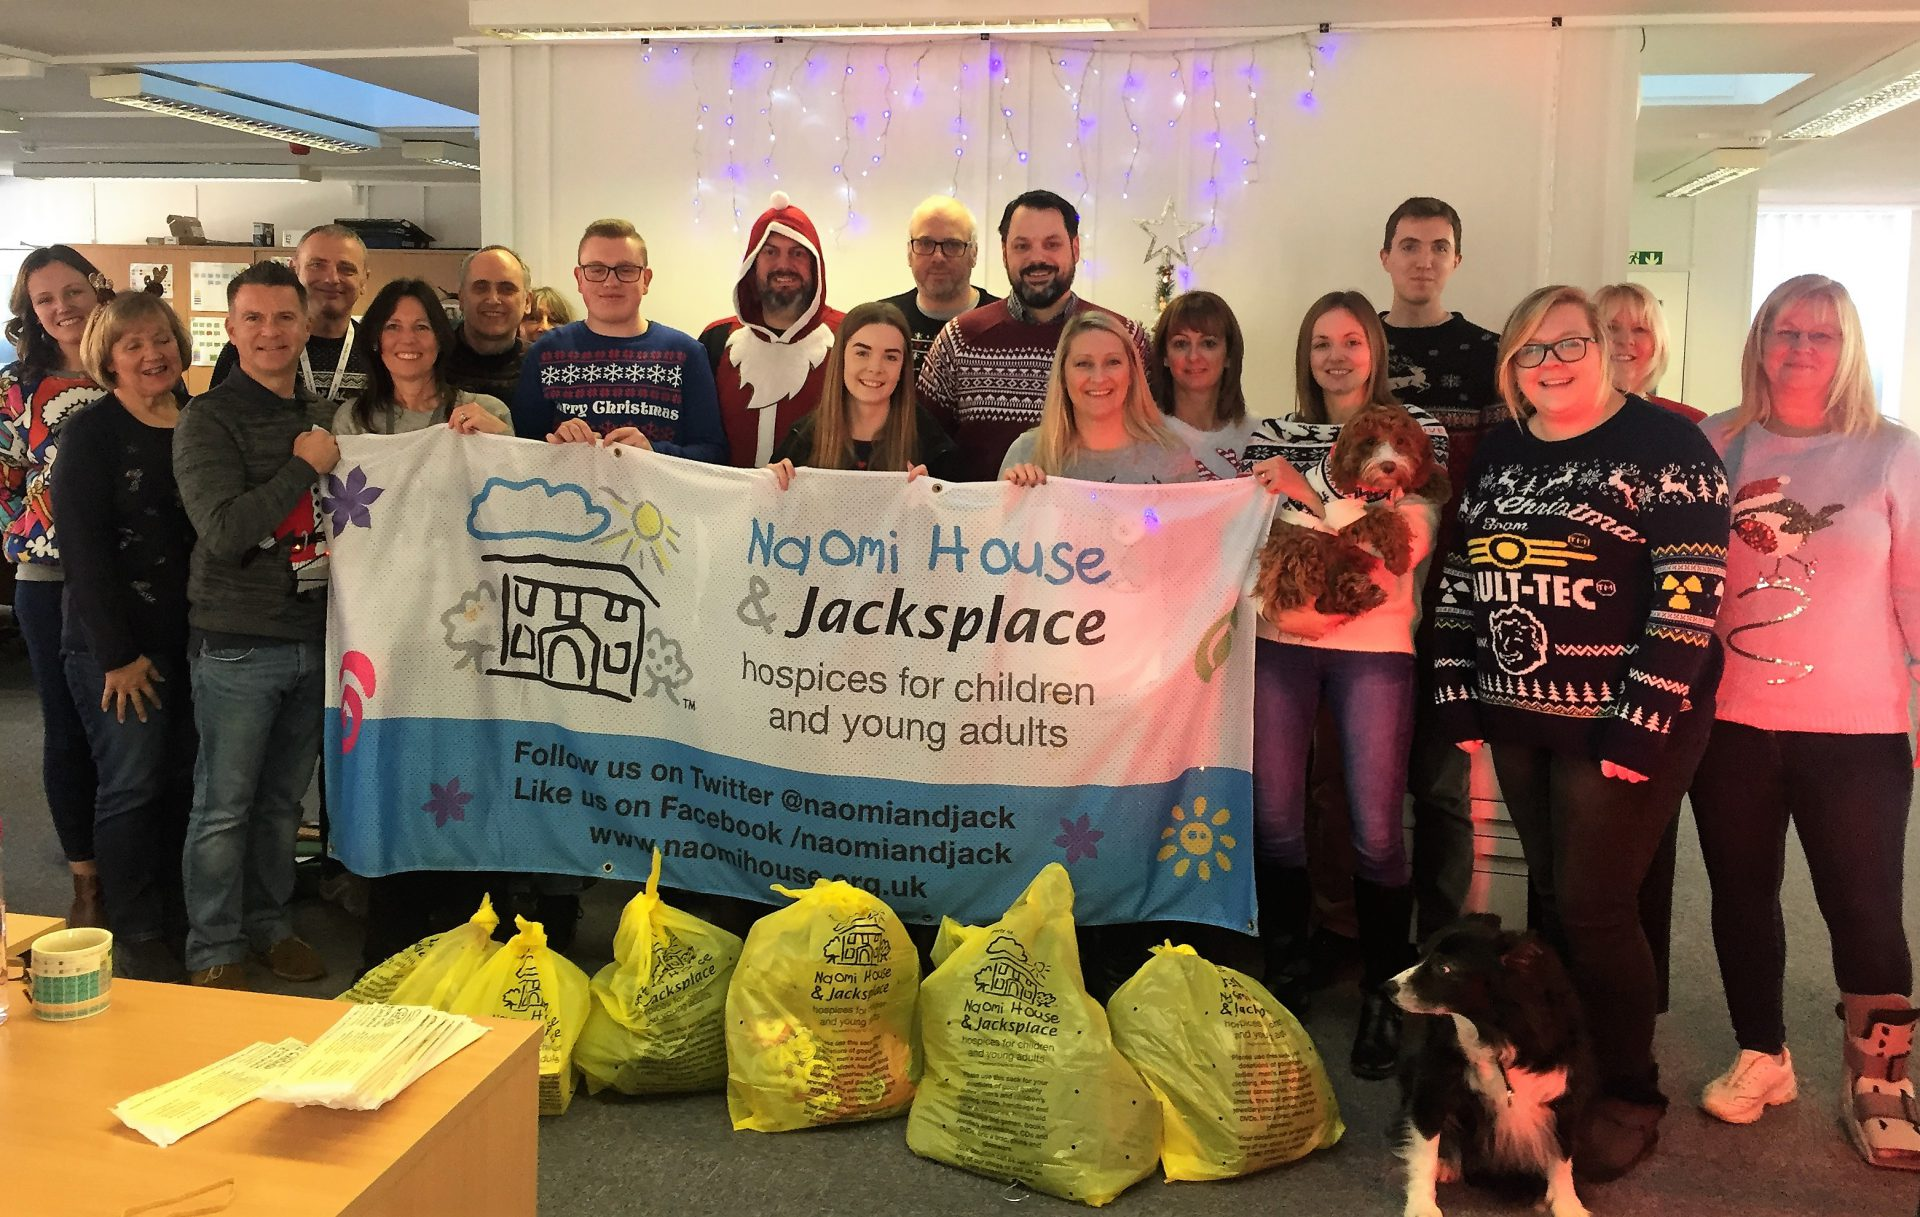 Naomi House Dec 2018 2 1920x1217 - Christmas Jumper Day 2018 and Naomi House & Jacksplace Collection